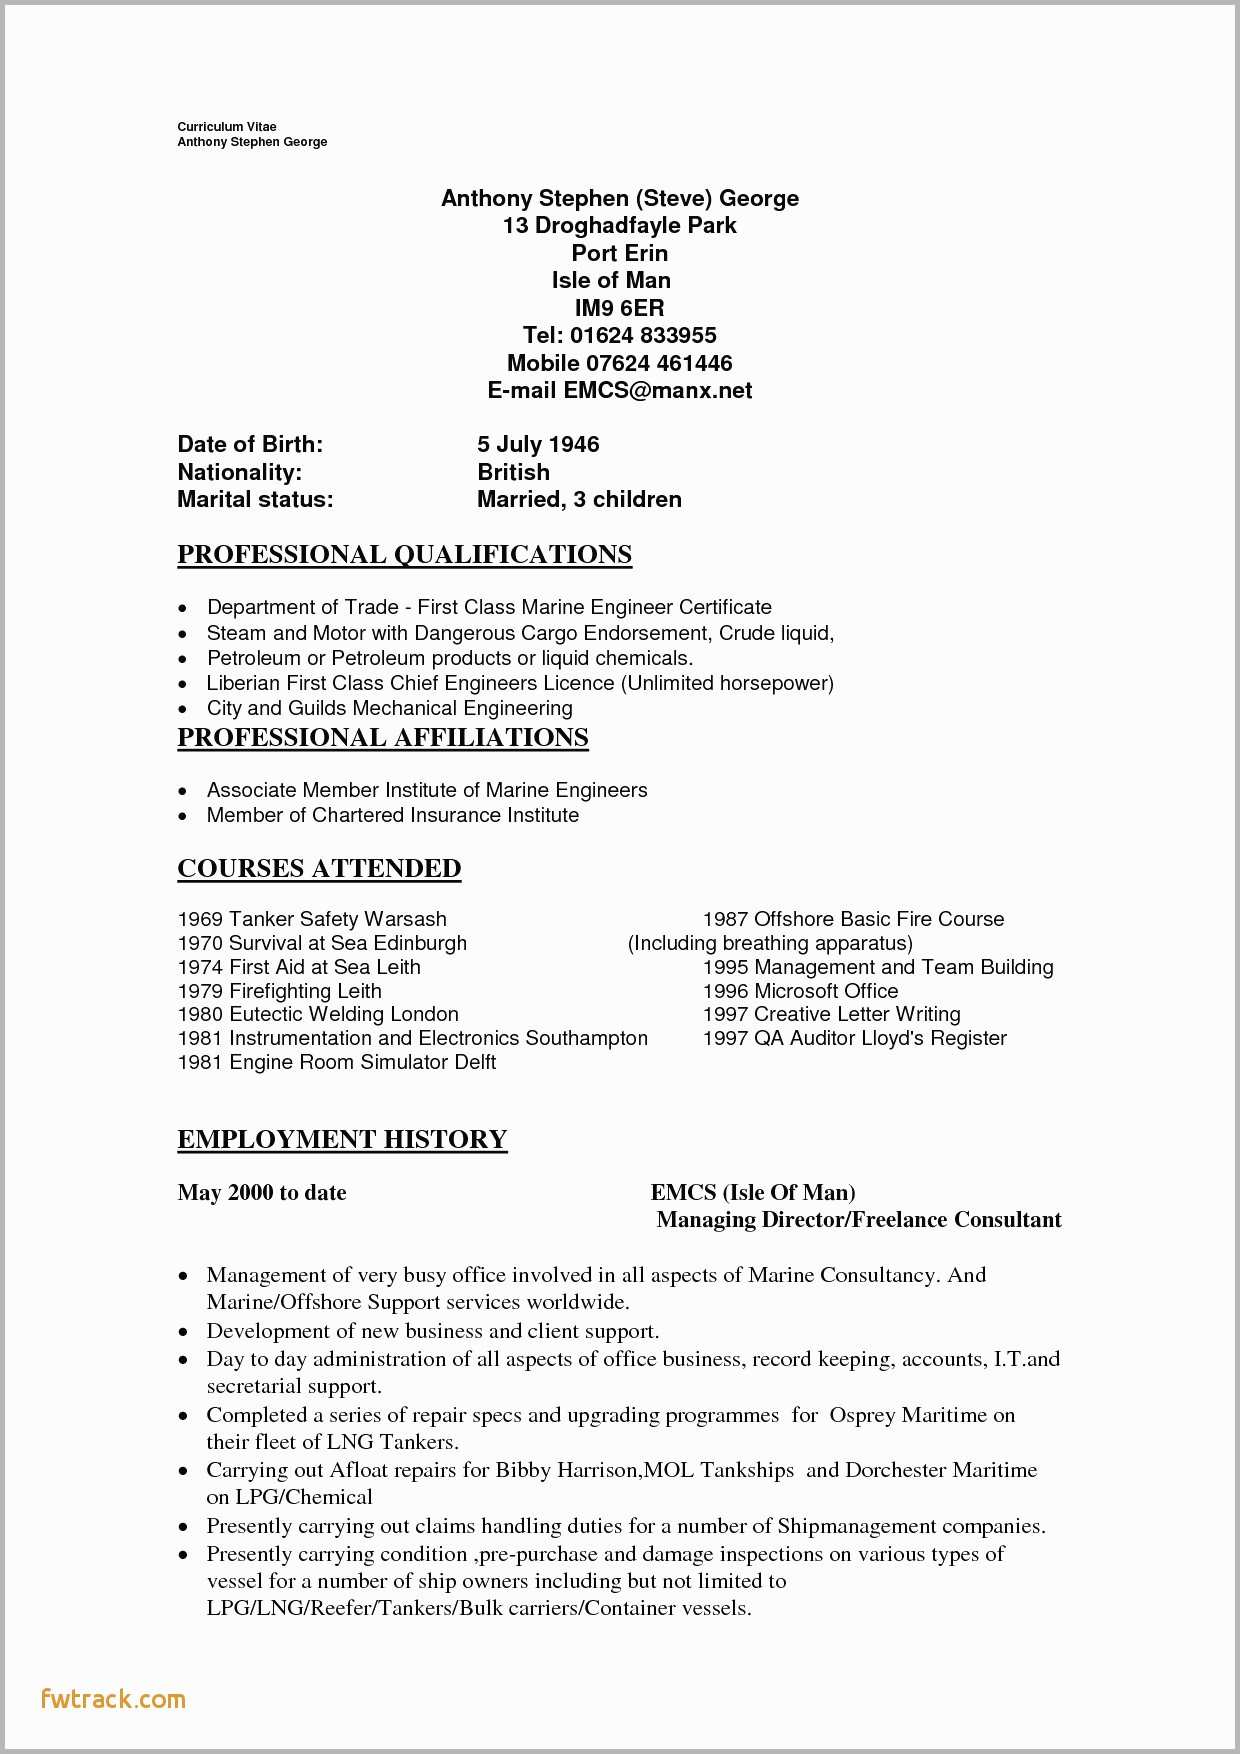 resume template for engineers example-Mechanical Engineer Resume Template 13-k